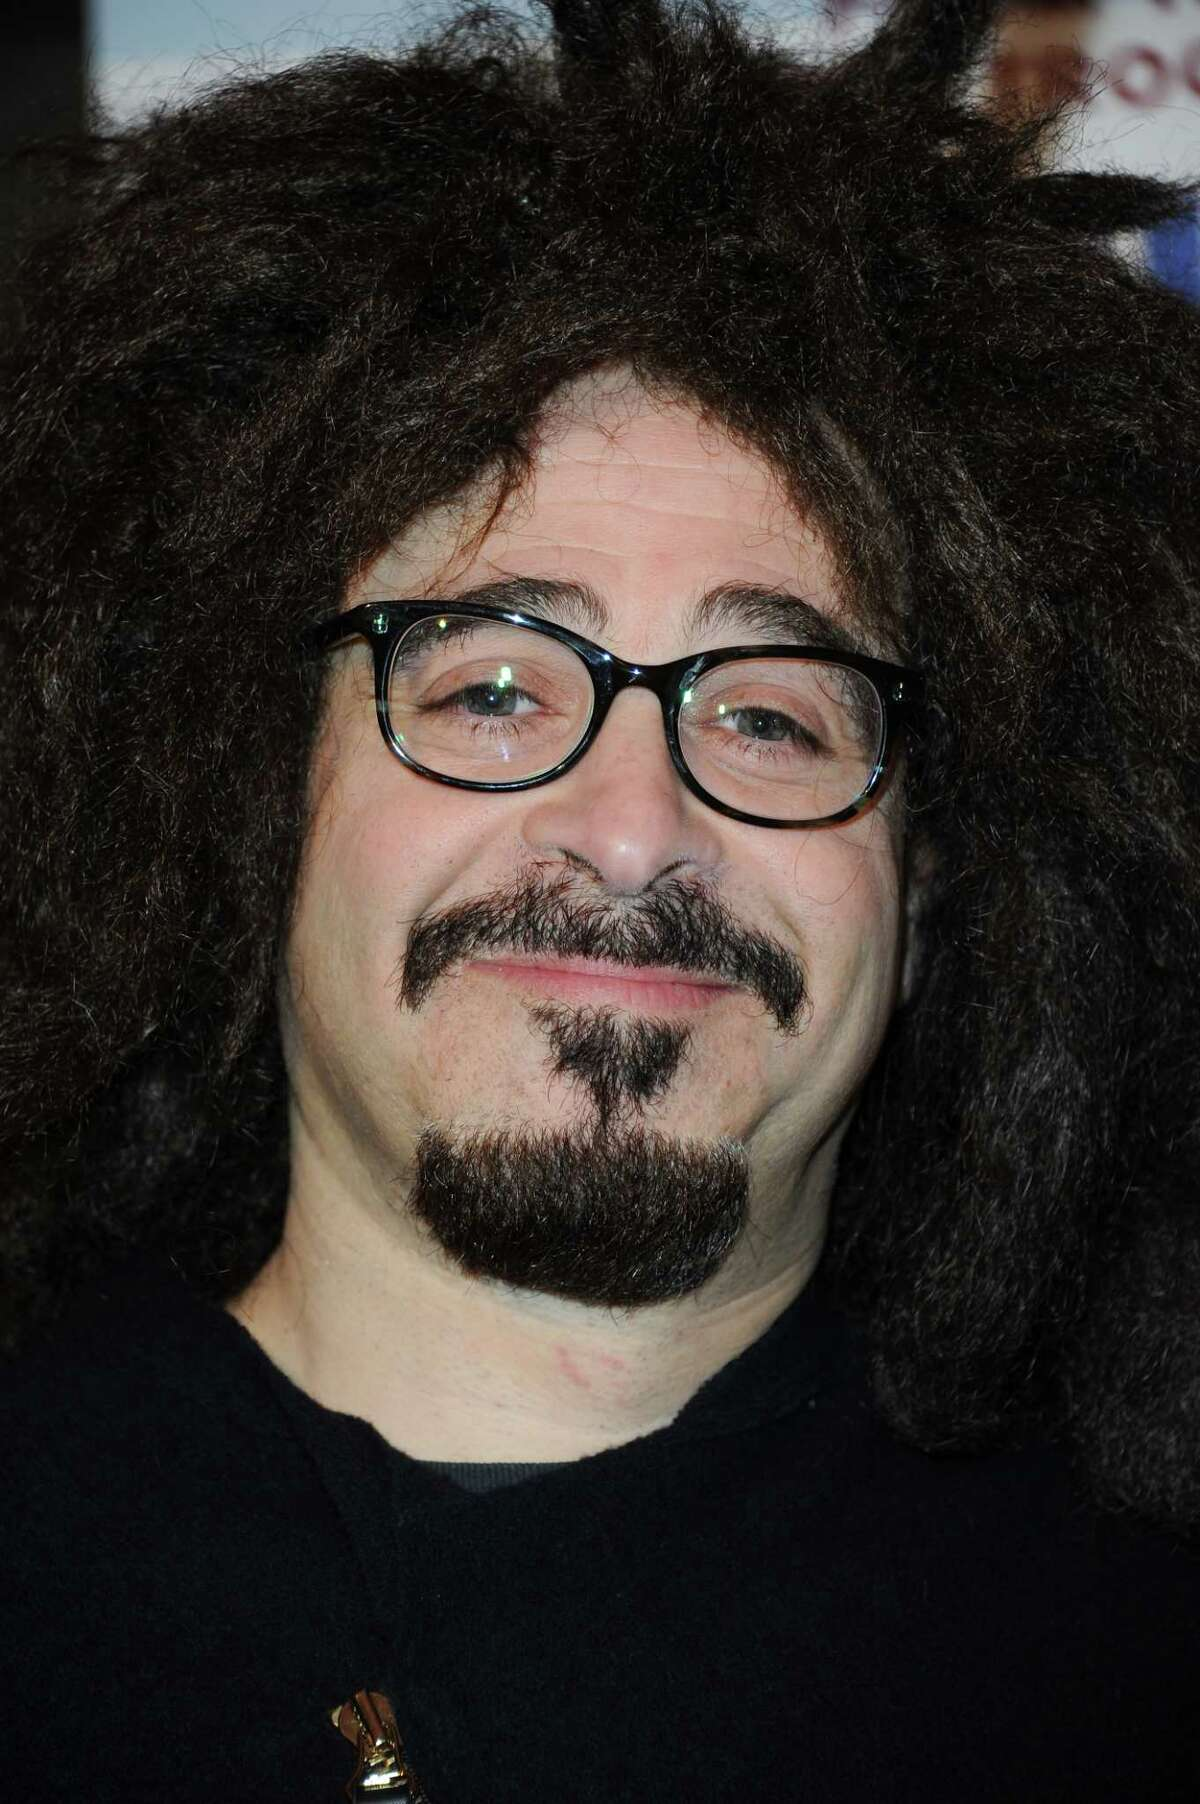 """Adam Duritz attends the LA premiere of """"Freeloaders"""" at the Sundance Sunset Cinema on Monday, Jan. 7, 2013 in Los Angeles. (Photo by Richard Shotwell/Invision/AP)"""